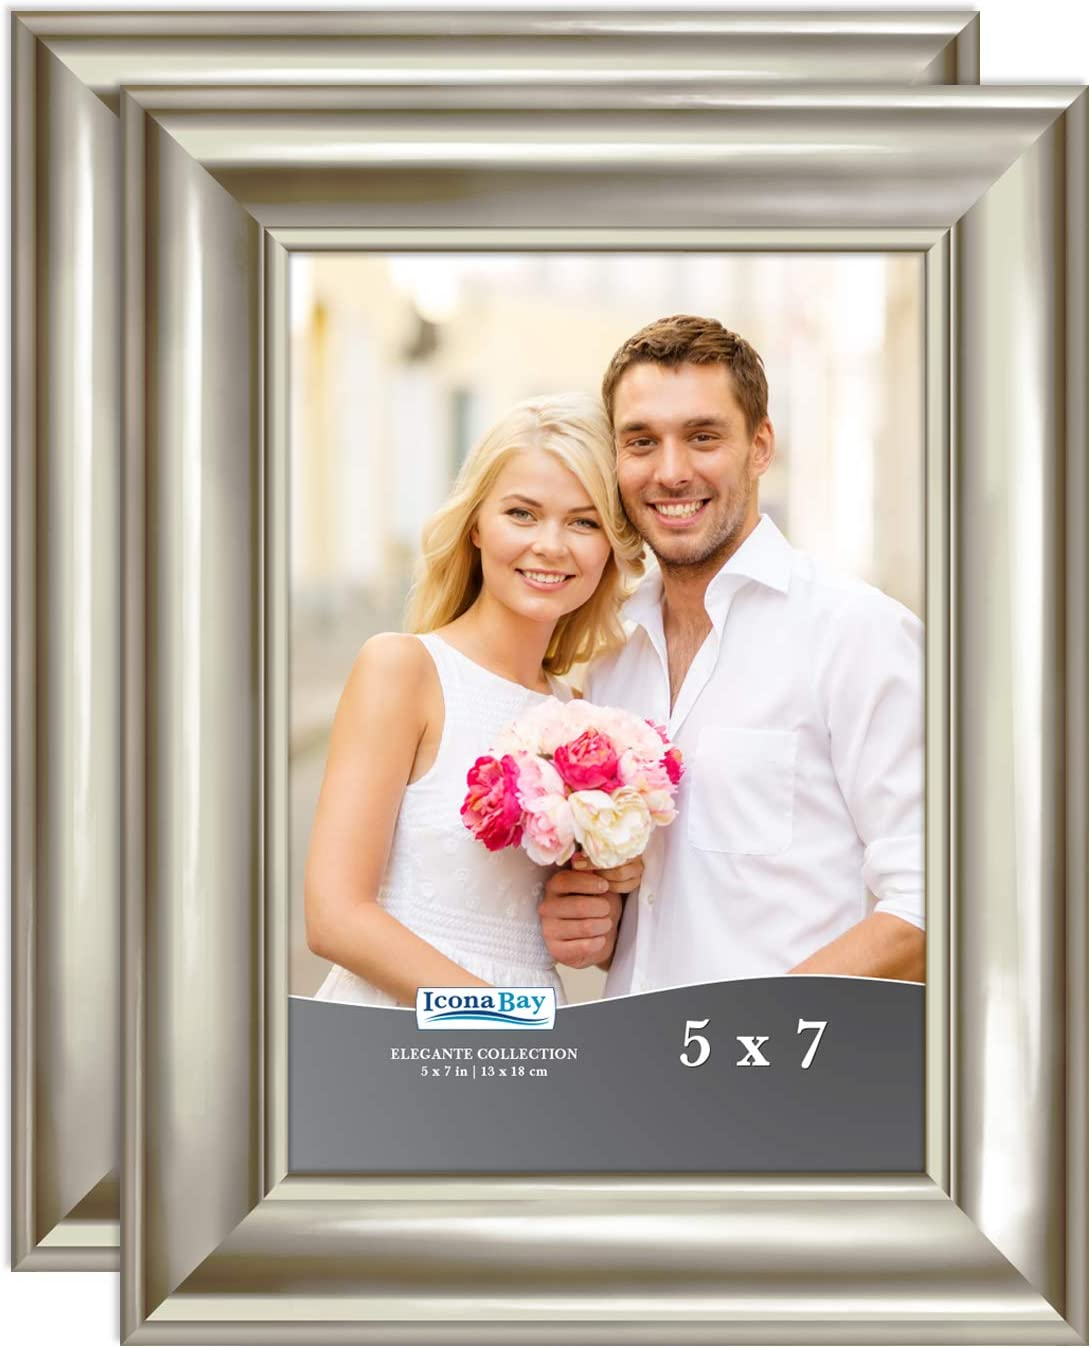 Icona Bay 5x7 Picture Frames (Champagne, 2 Pack), Contemporary Photo Frames 5 x 7, Wall Mount or Table Top, Elegante Collection